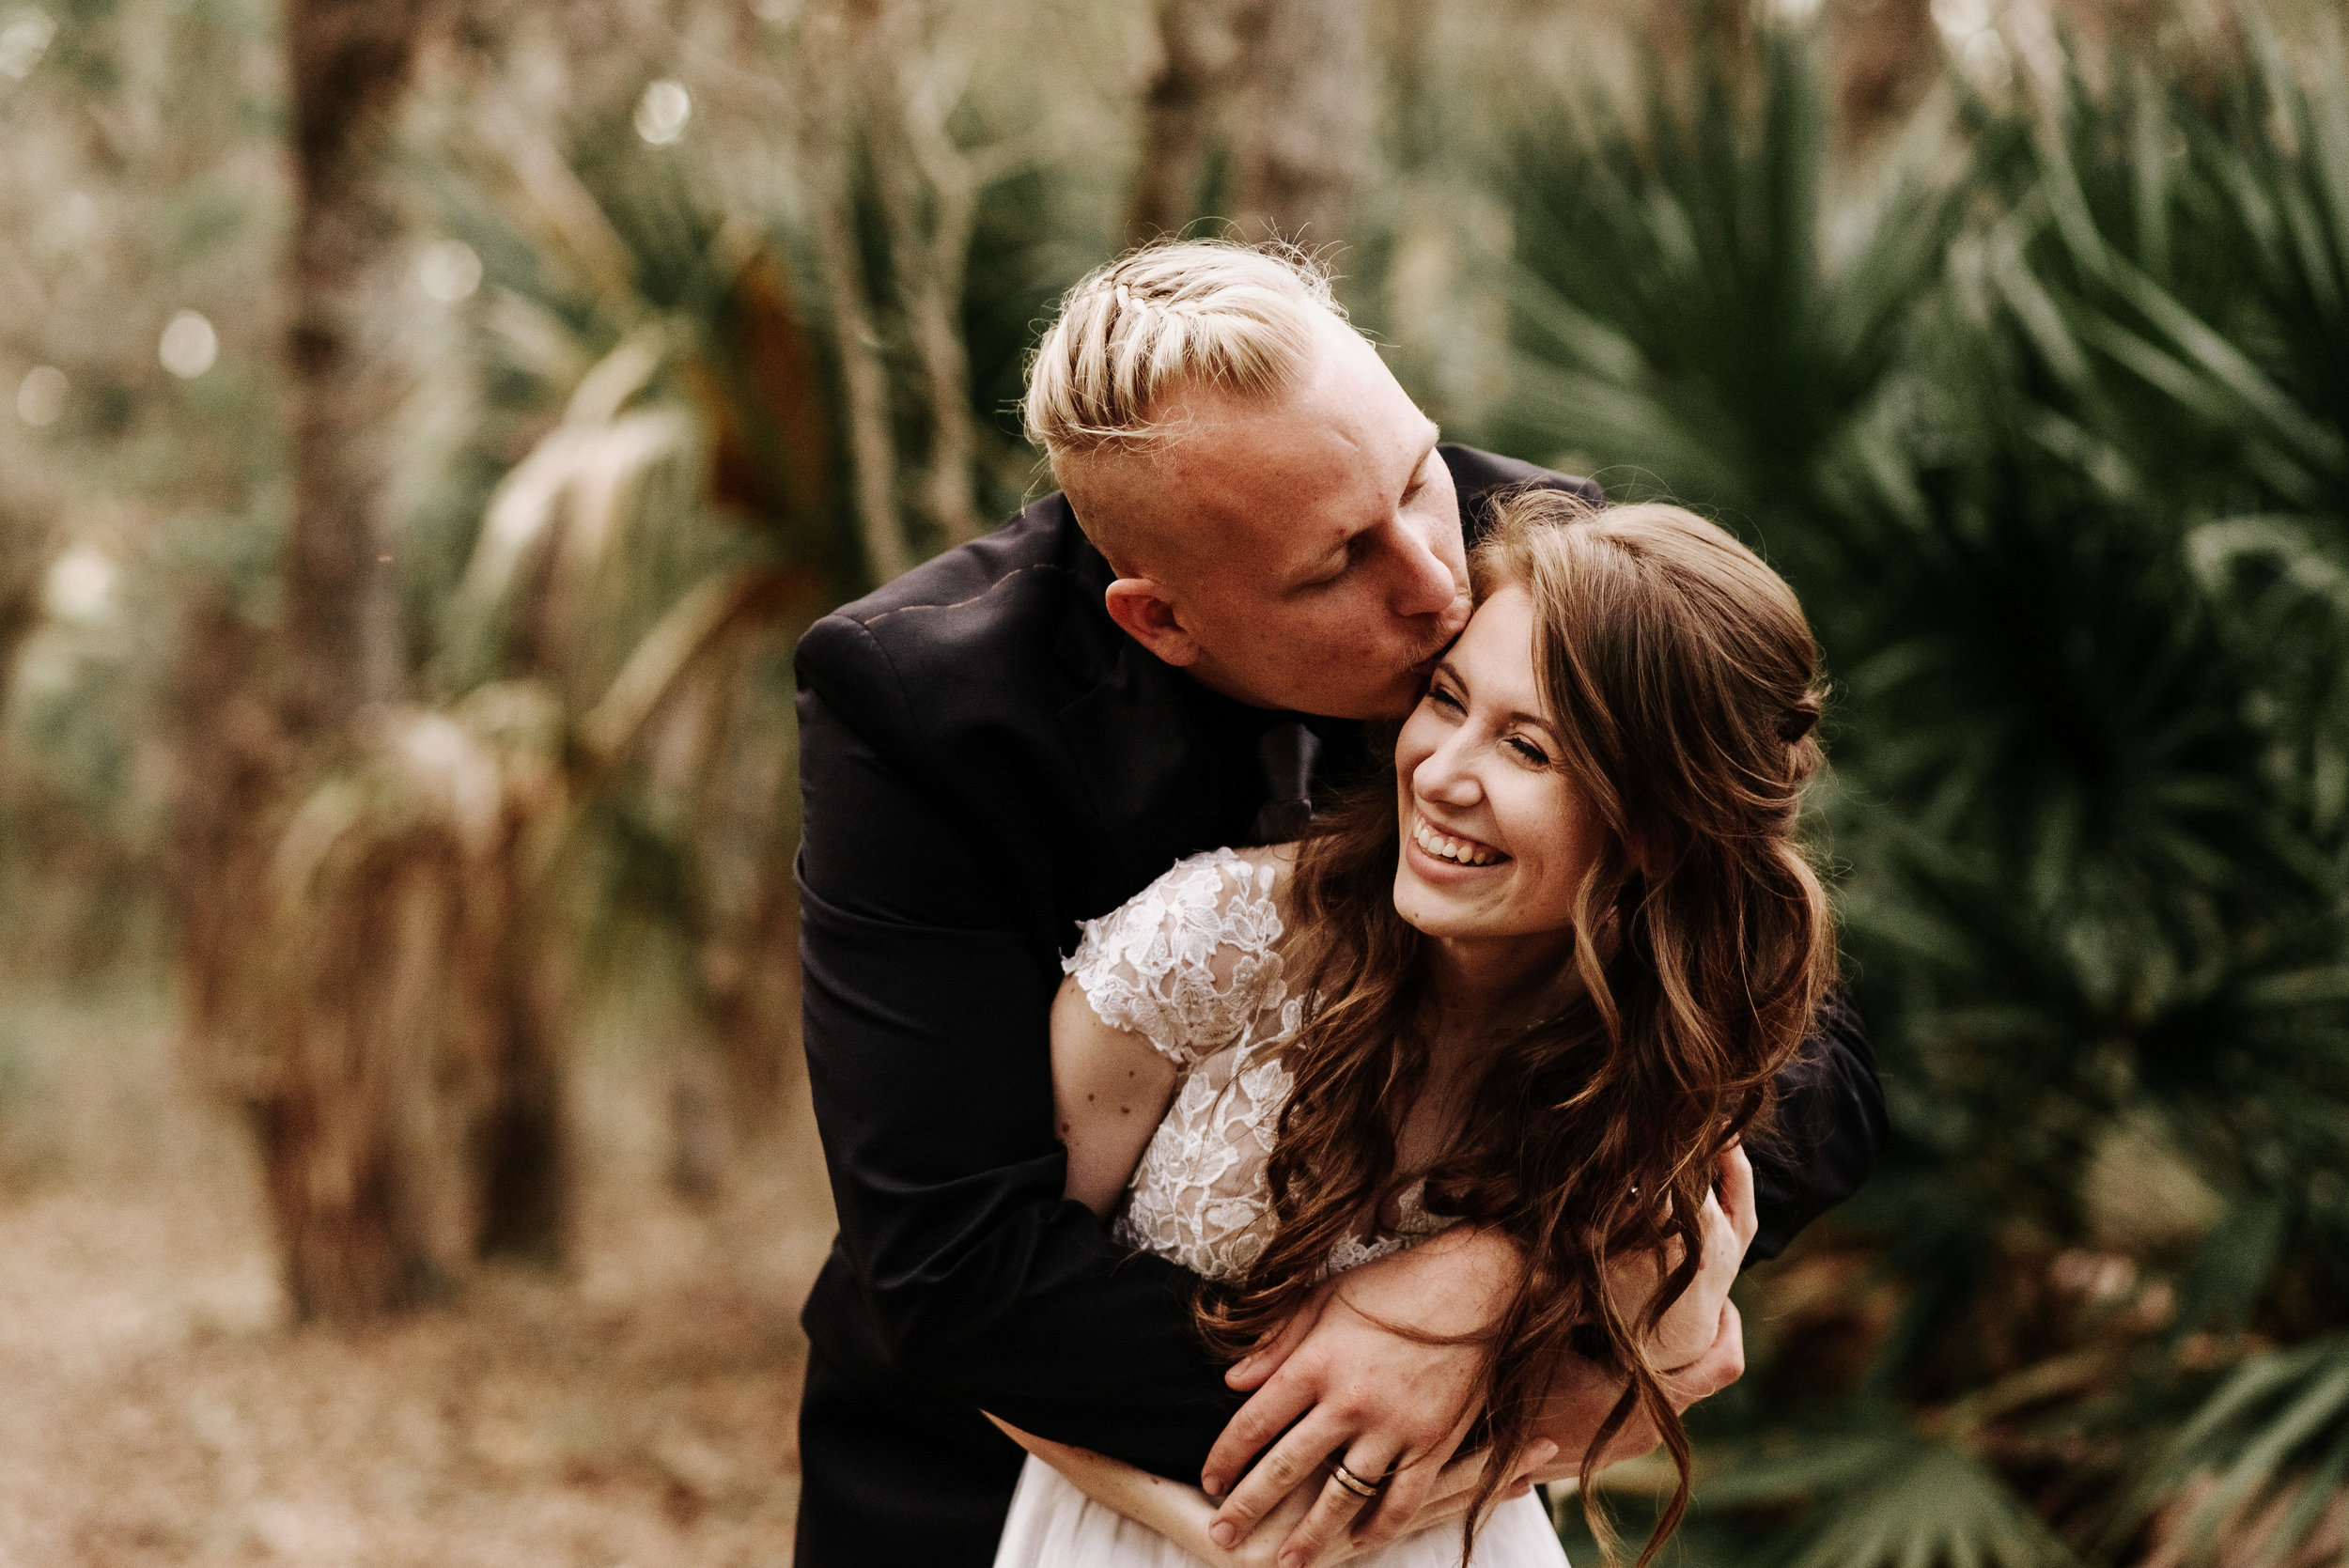 Jess_Micah_Portrait_Session_Wedding_Vero_Beach_Florida_Photography_by_V_0385.jpg